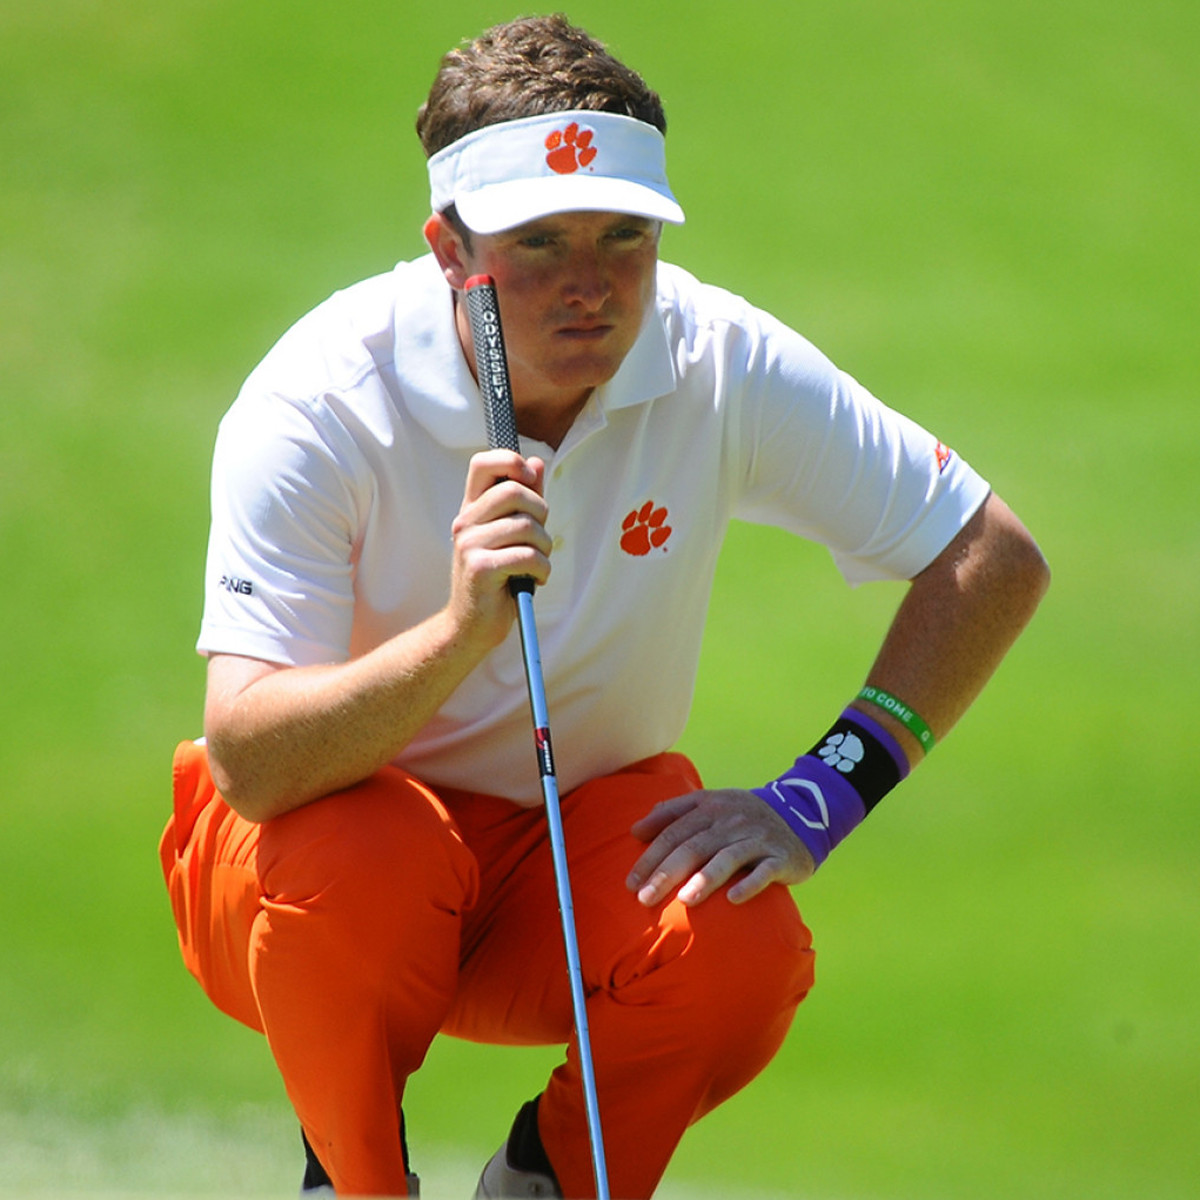 Behr and Langdale Candidates for Palmer Cup Team